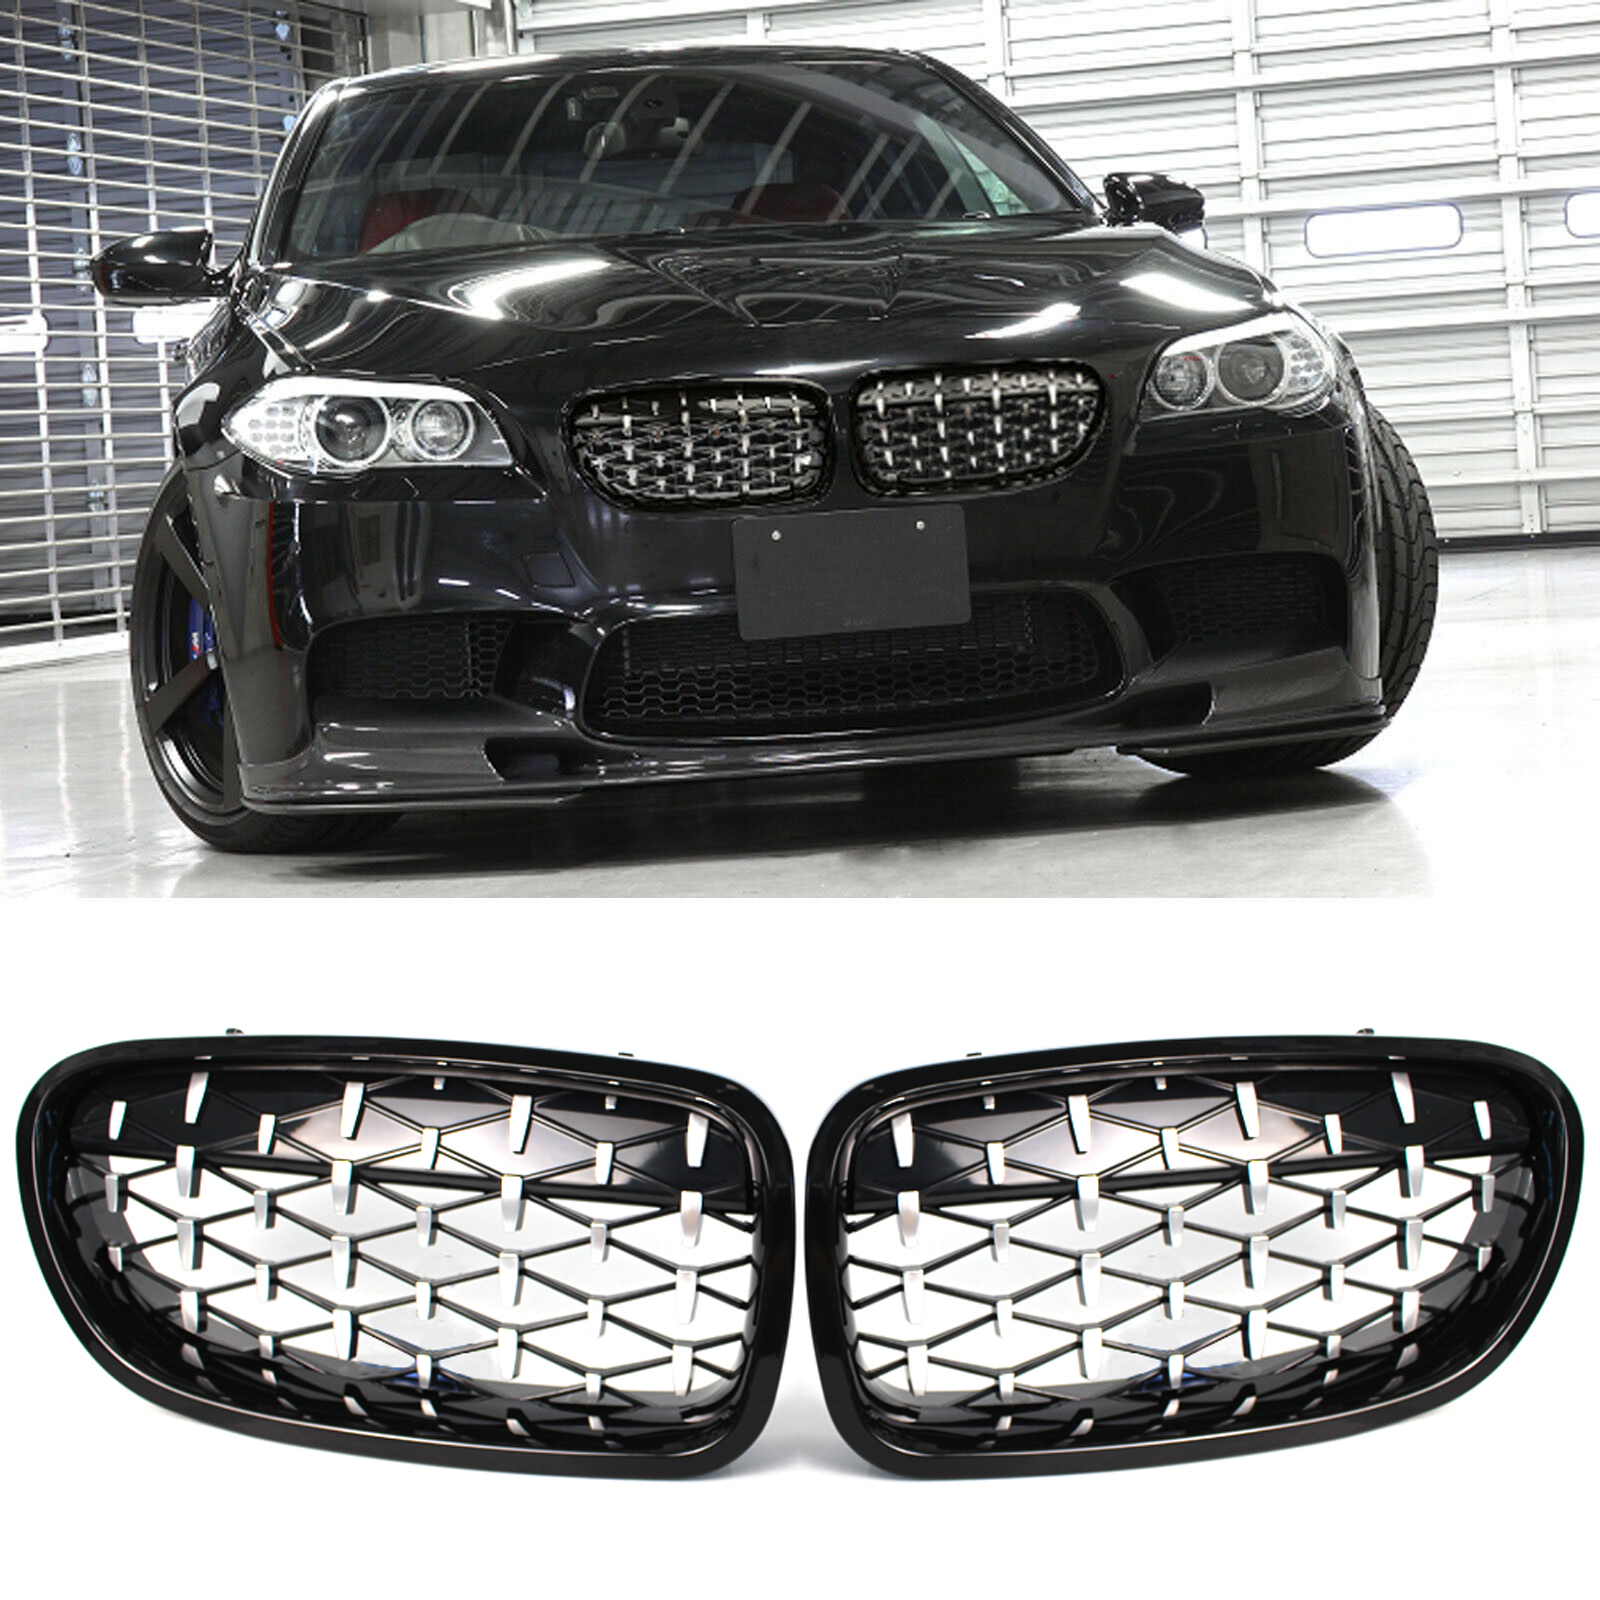 Gloss Black Front Kidney Grille Grill Compatible with BMW F10 528i 535i 550i 4D M5 2011-2016 10-17